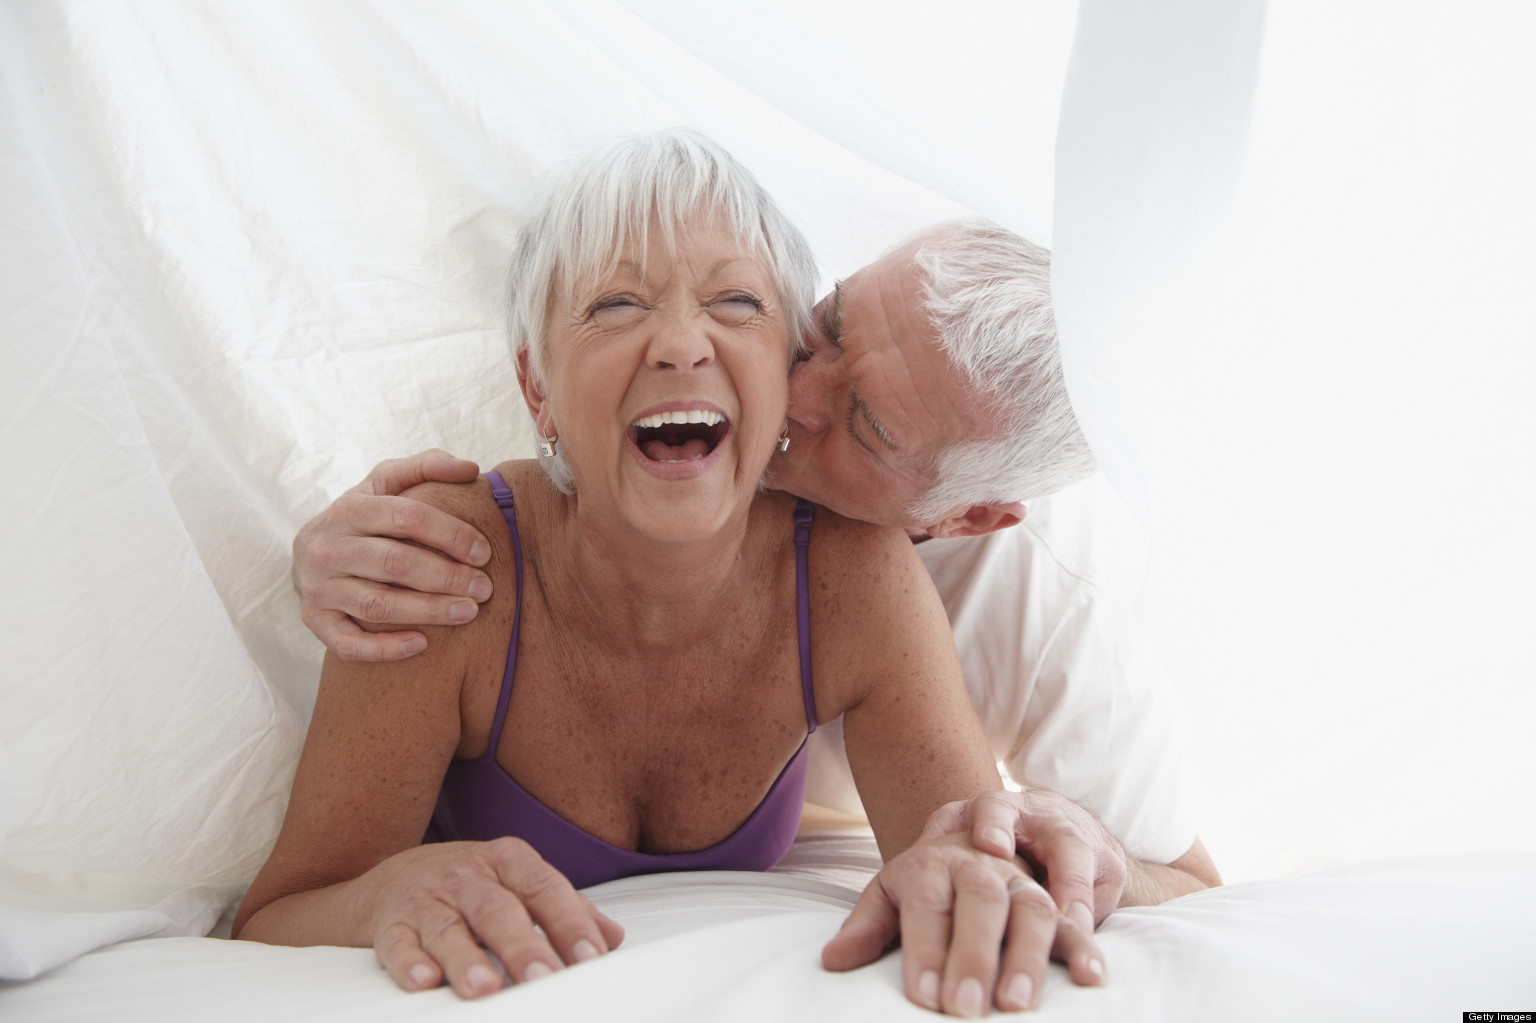 Perks of dating men over 50